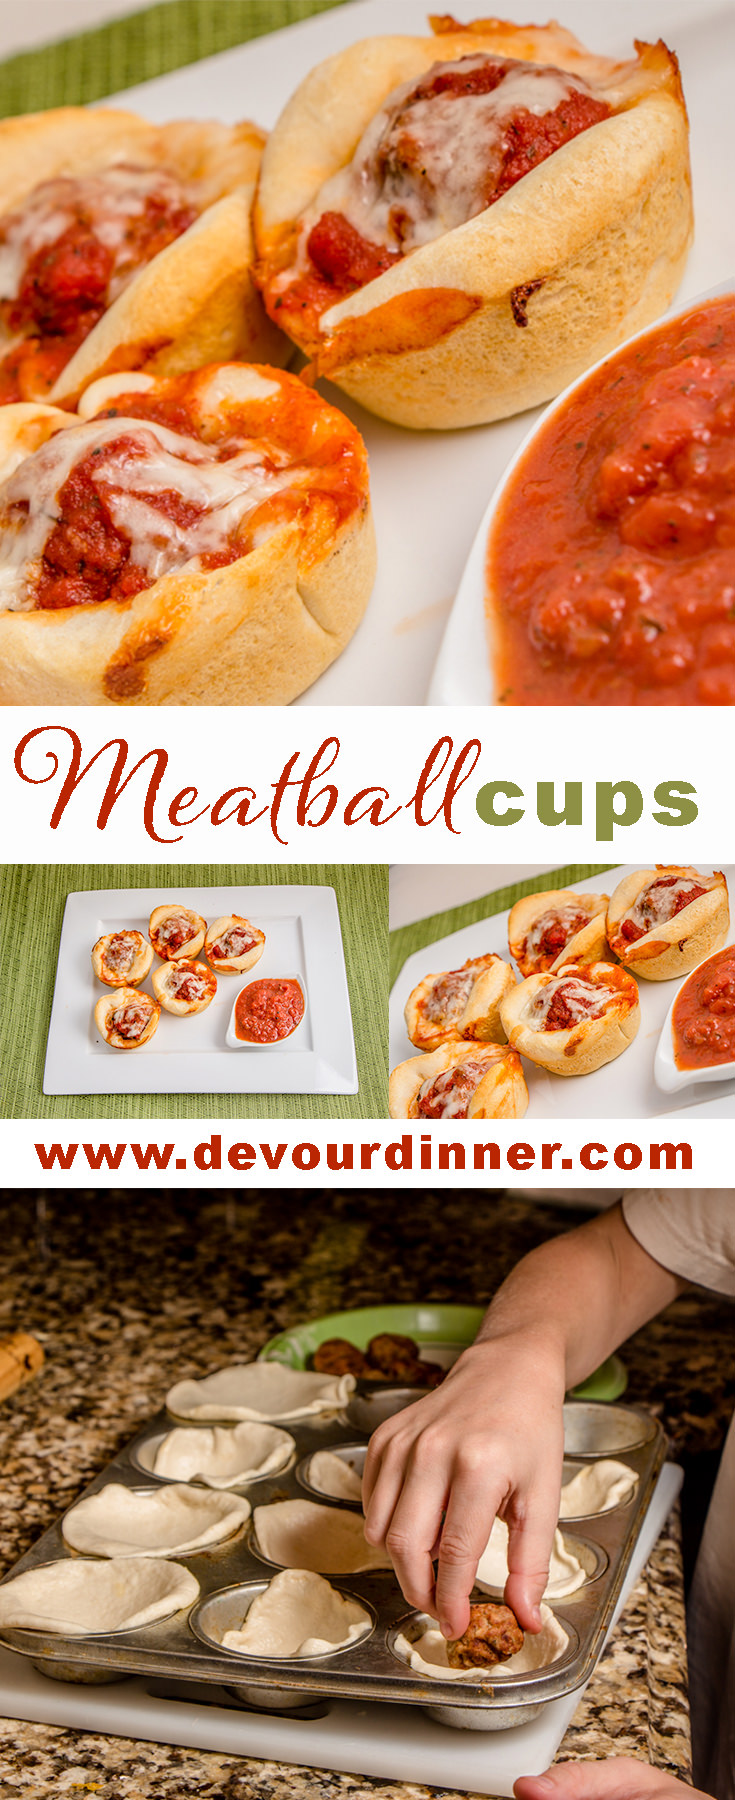 Meatball Cups - Devour Dinner - Quick and easy after school snack or even appetizer. The children can help make. #meatballs #recipe #food #snack #food #easyrecipe